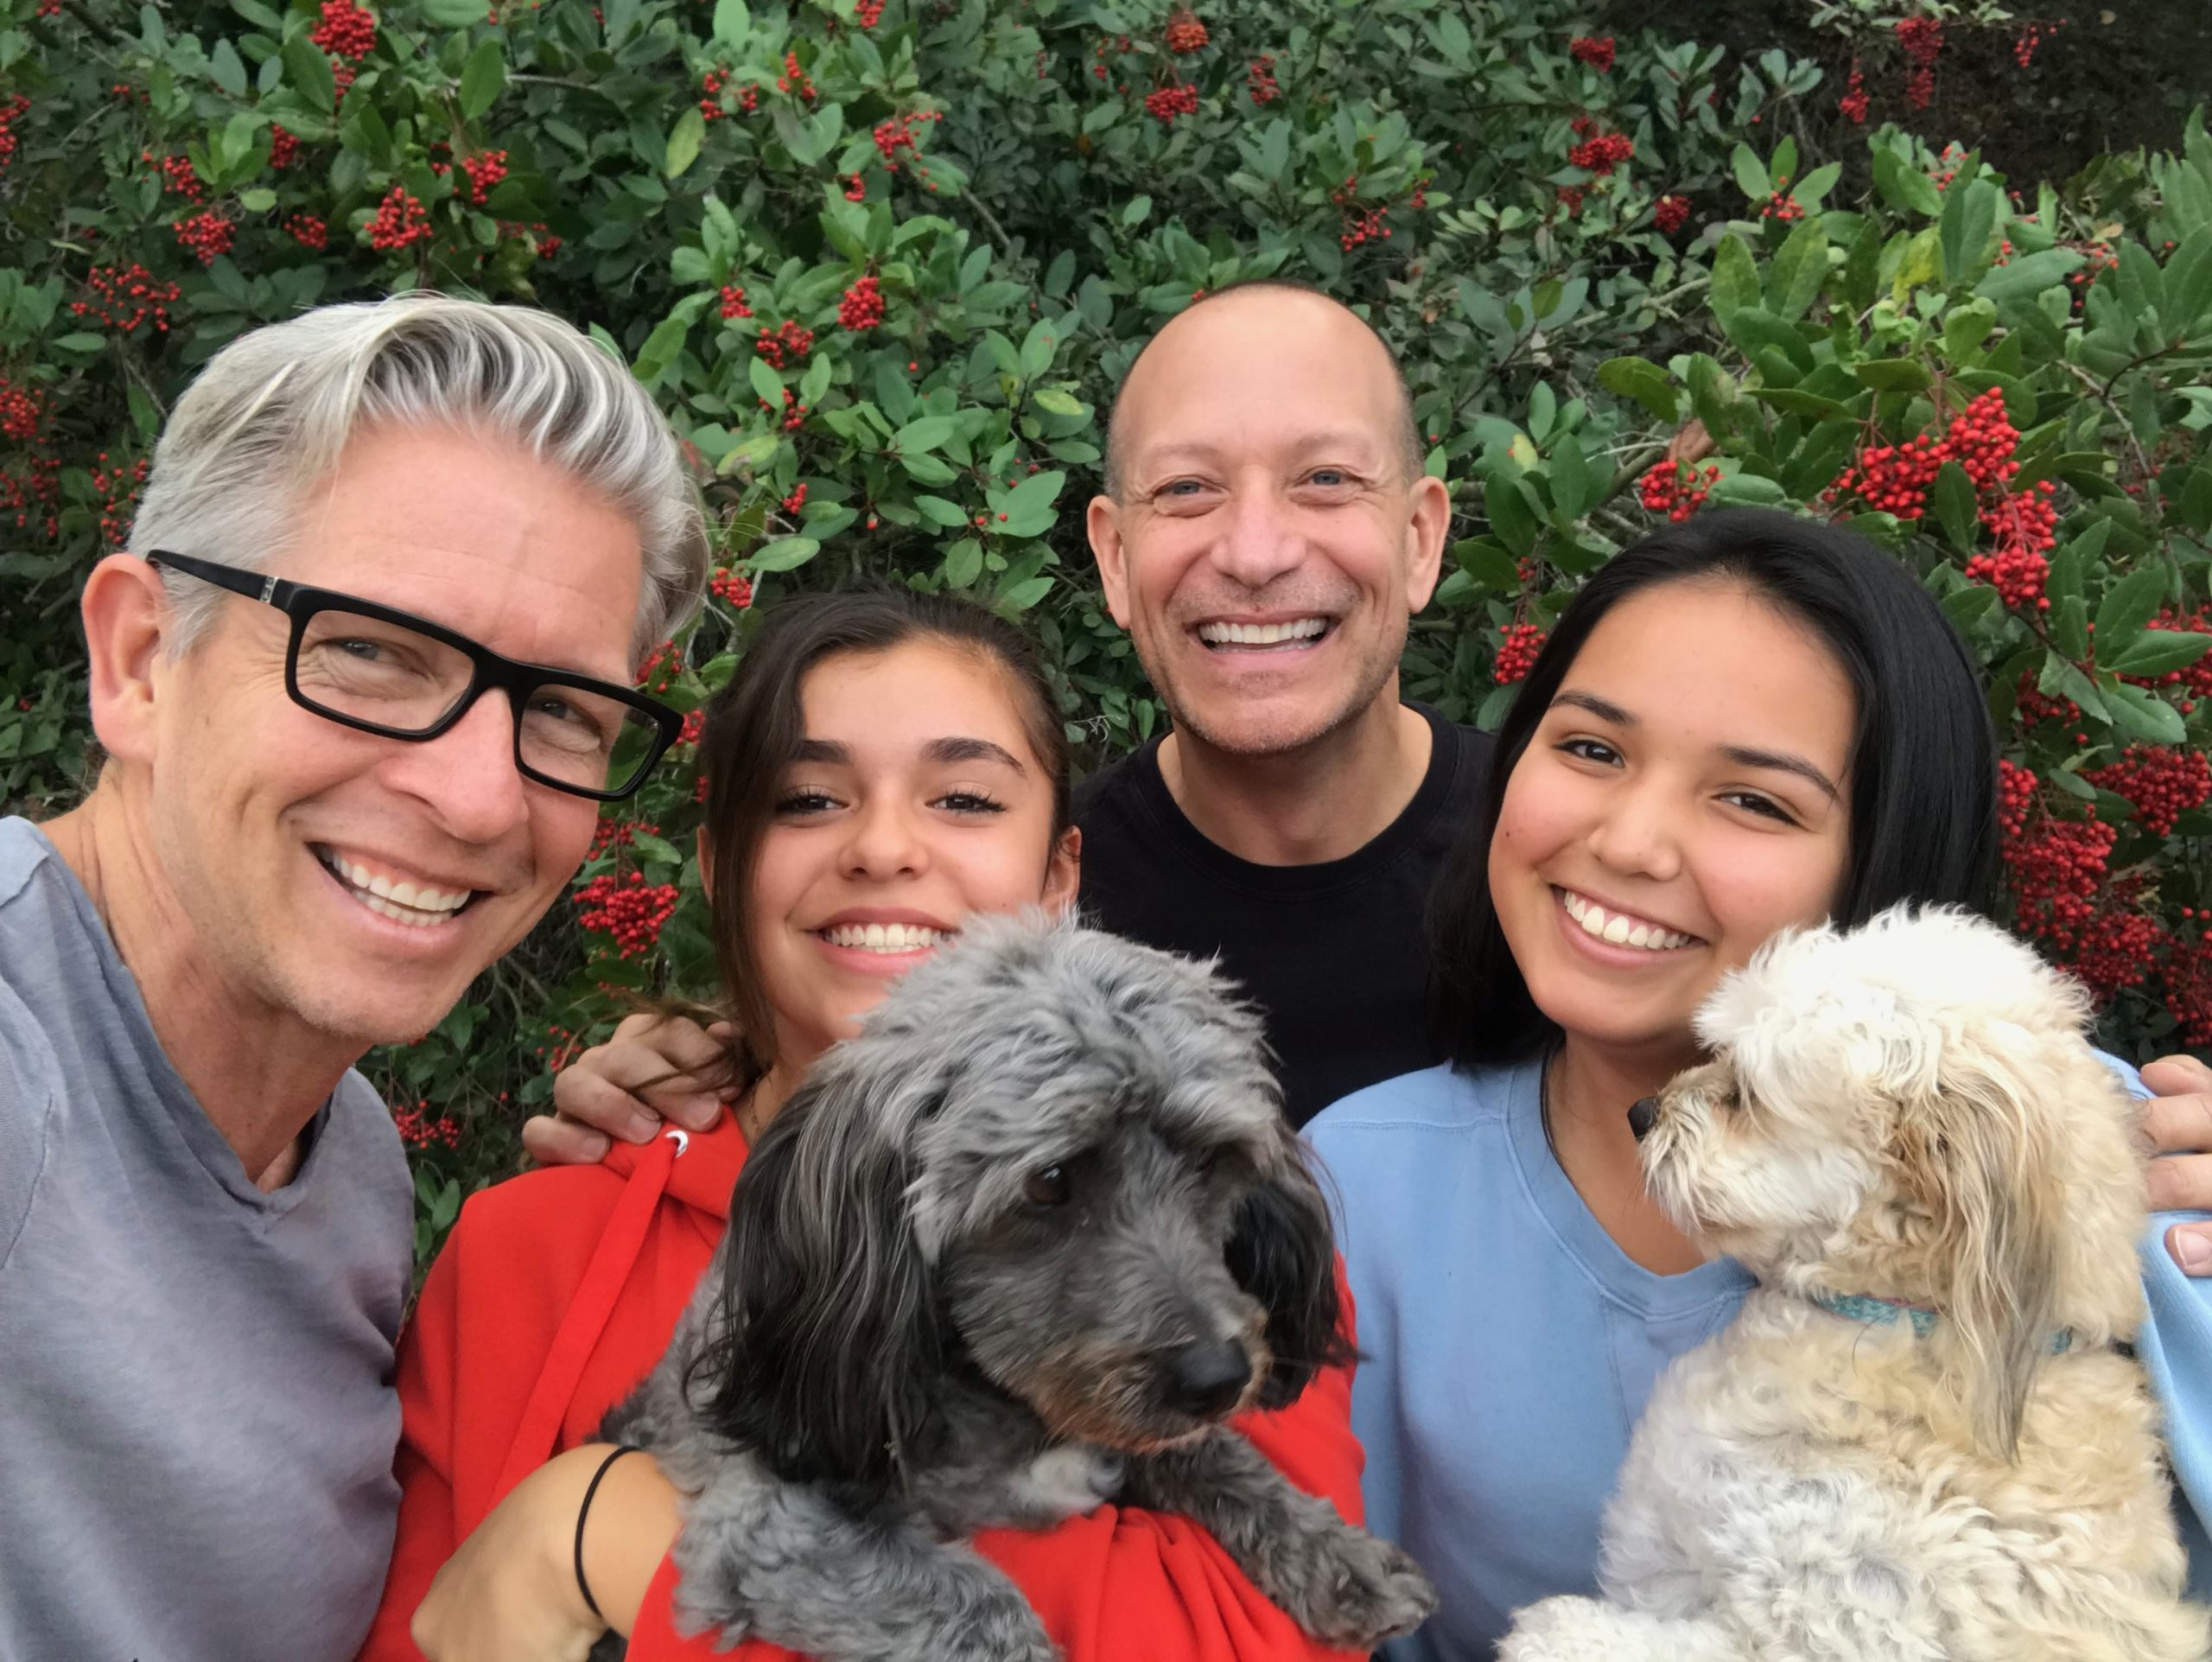 family with two dads and two teen daughters hold two dogs while smiling for camera in San Diego, CA